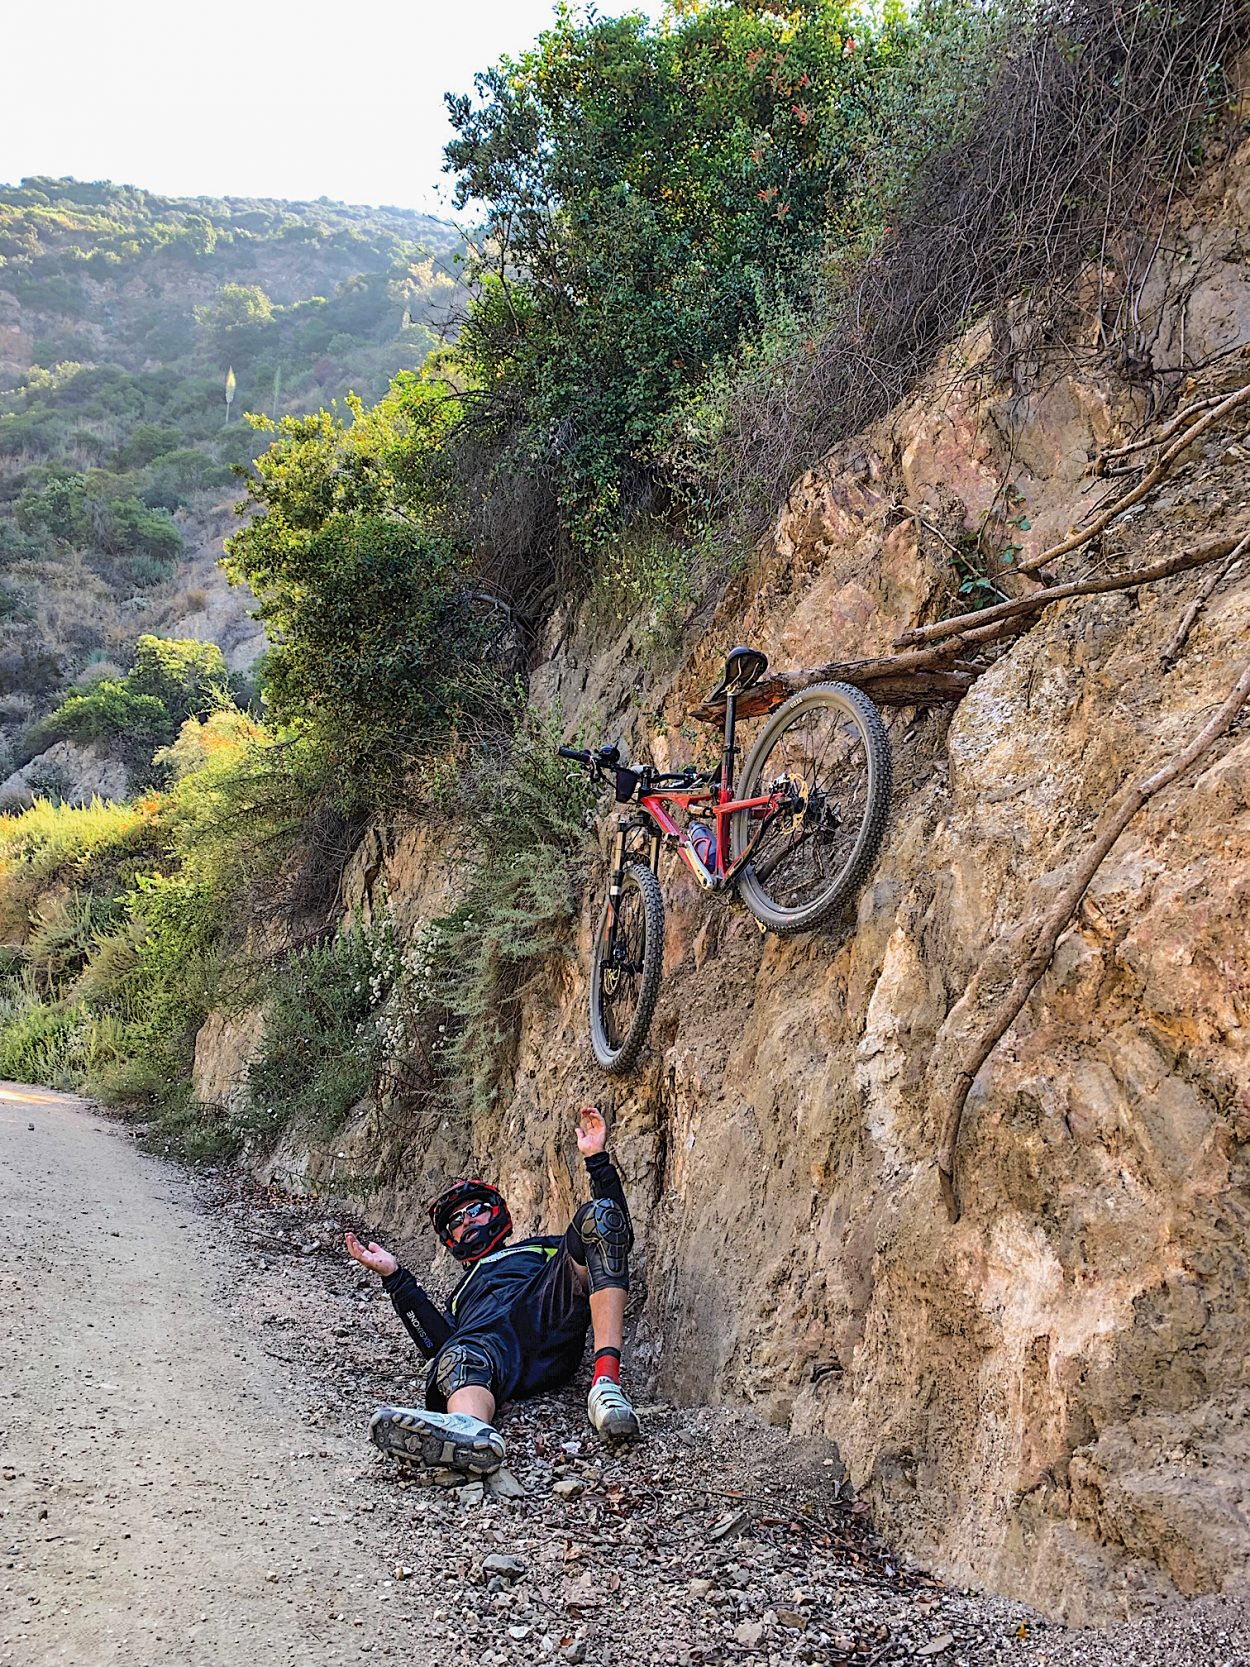 Places to Ride: Mount Wilson, California | Mountain Bike Action Magazine